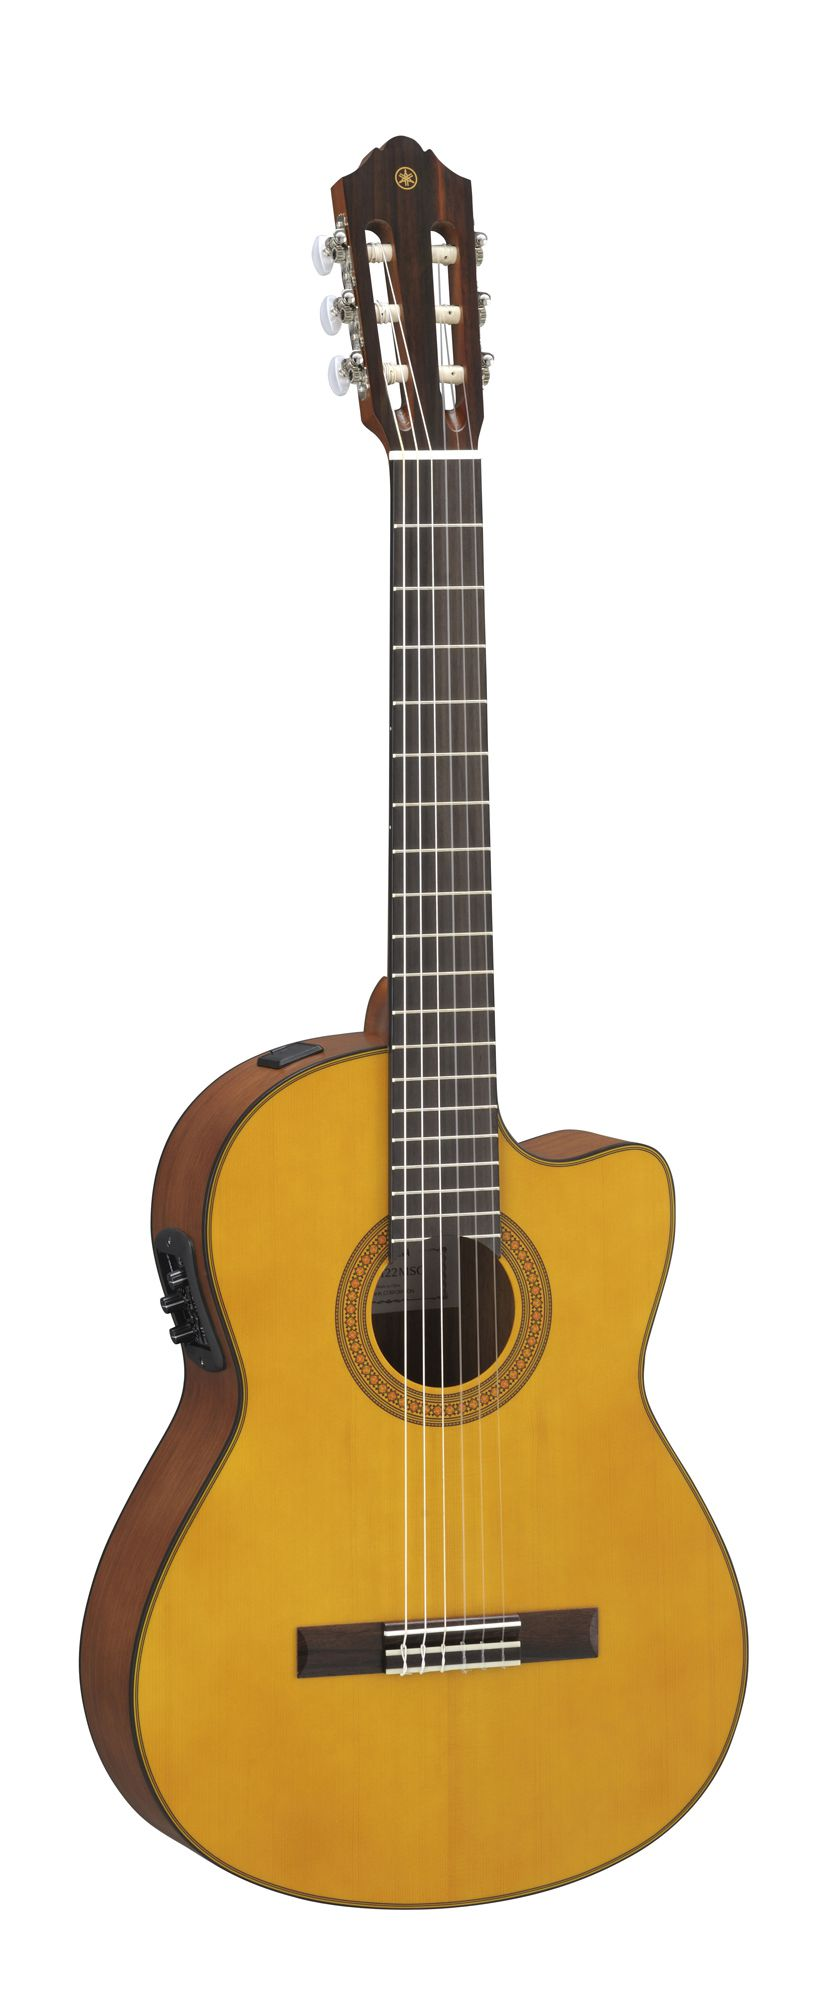 Violão Yamaha CGX122MSC - Natural